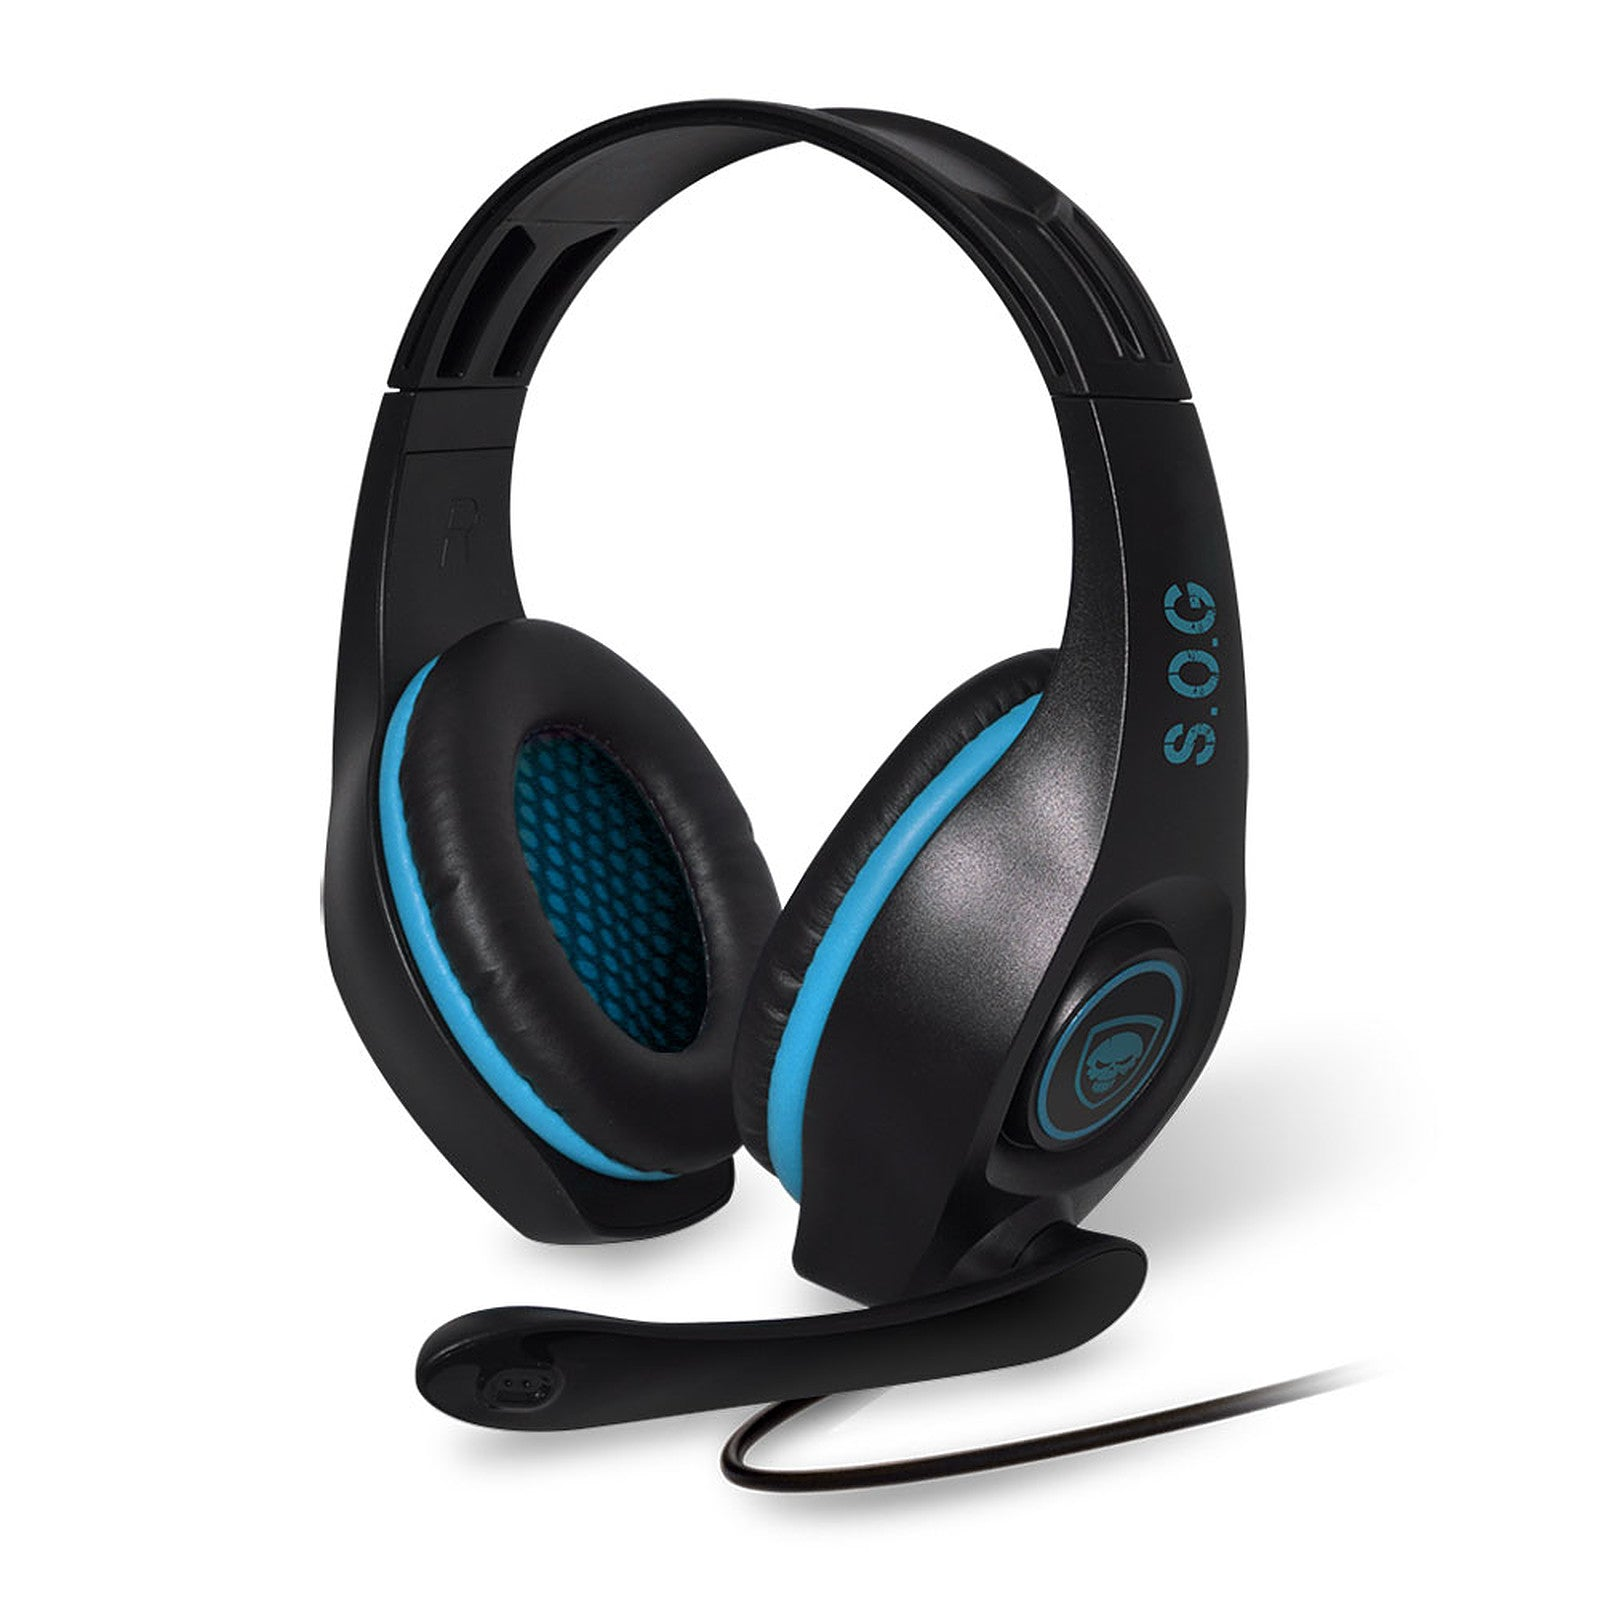 Spirit of Gamer Pro-H5 (Bleu) - Casque-micro pour gamer (compatible PS4 / Xbox One / Nintendo Switch / PC / MAC) Casque Gaming